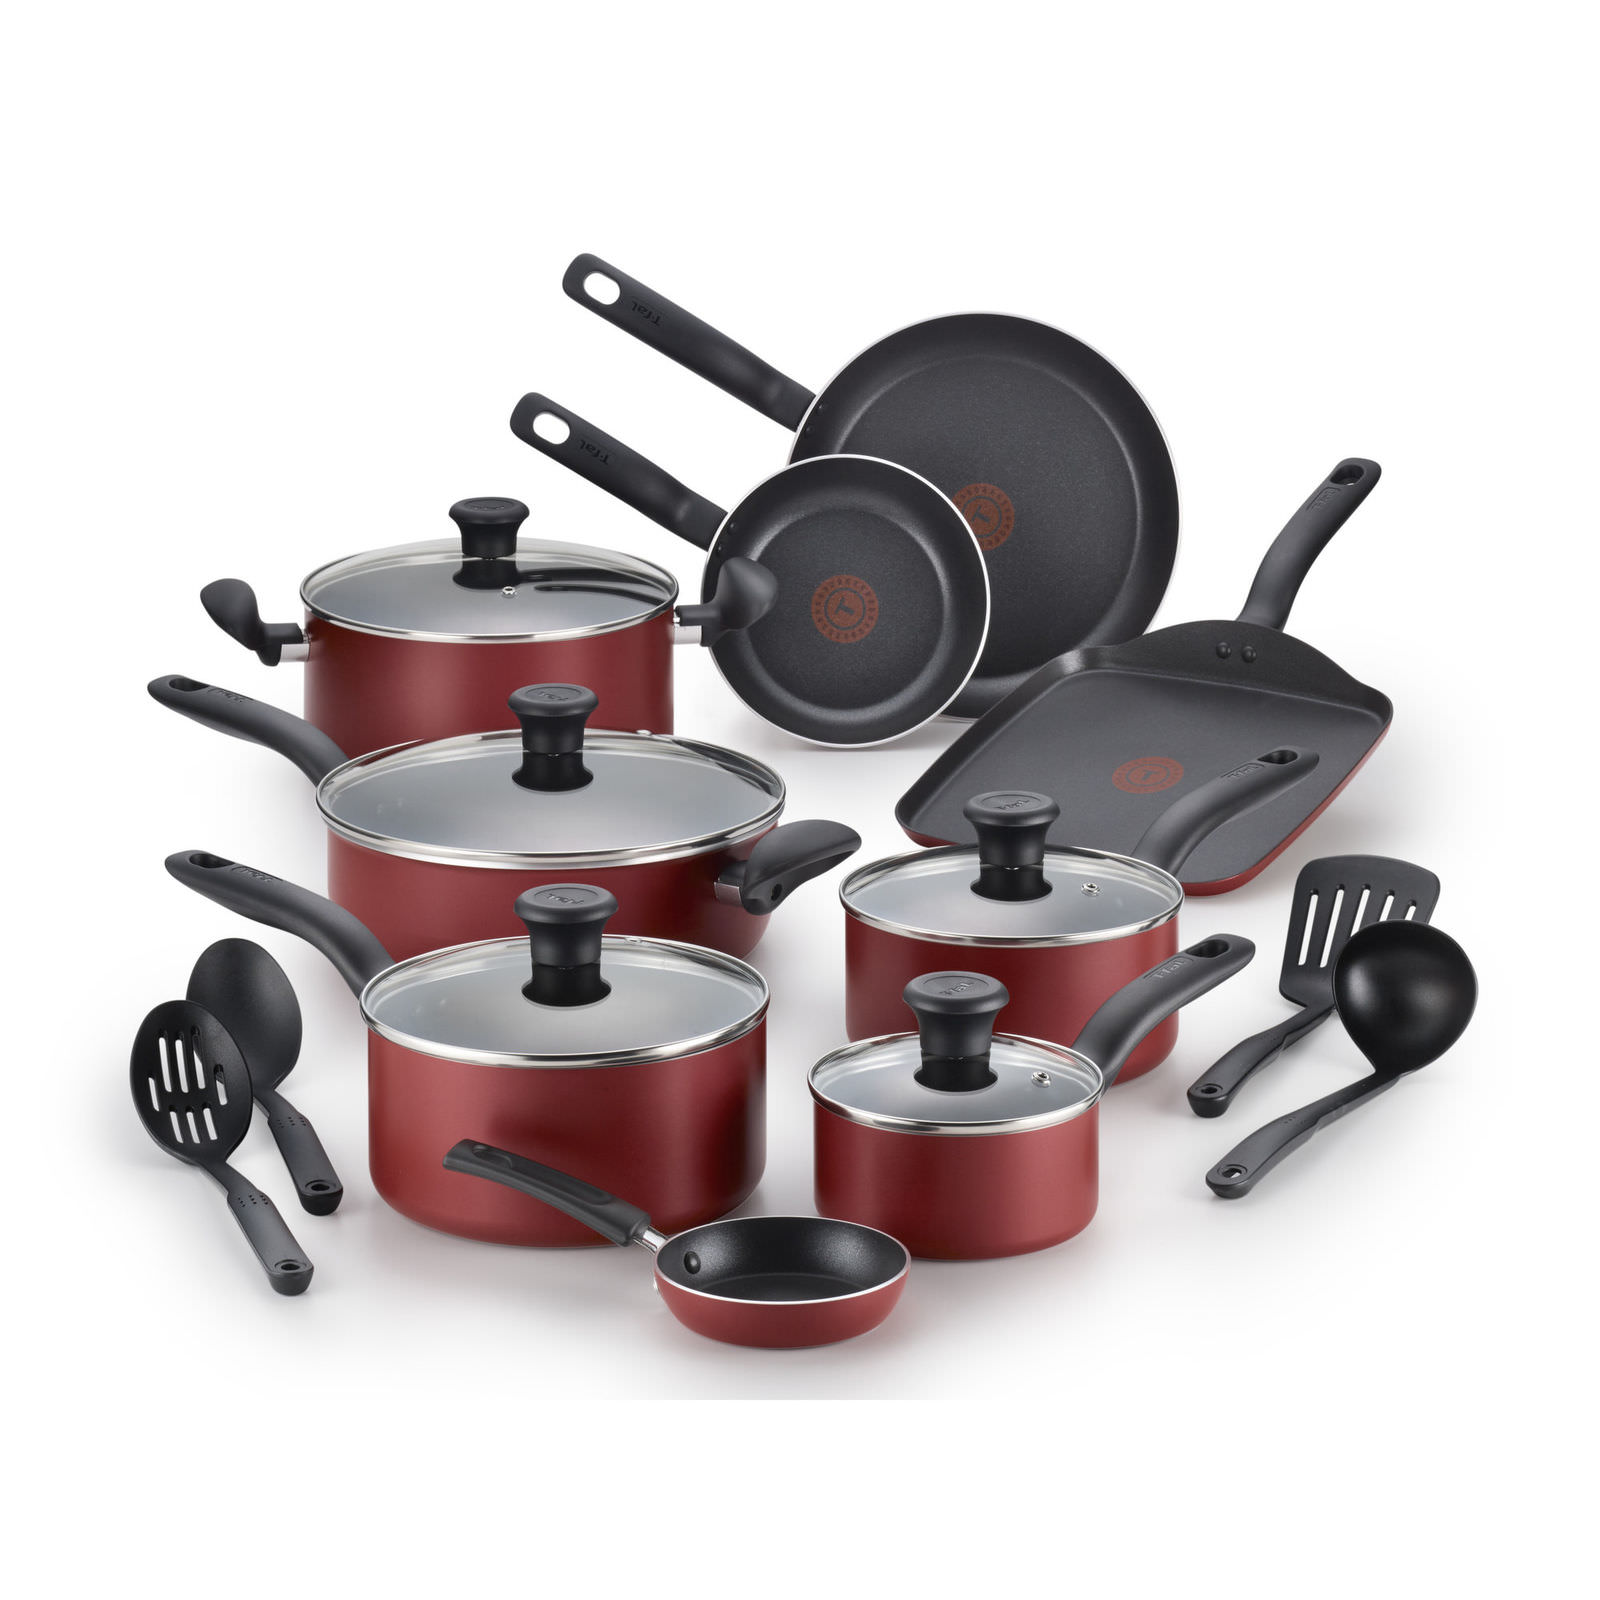 T-Fal Initiatives 18-Piece Cookware Set - Red